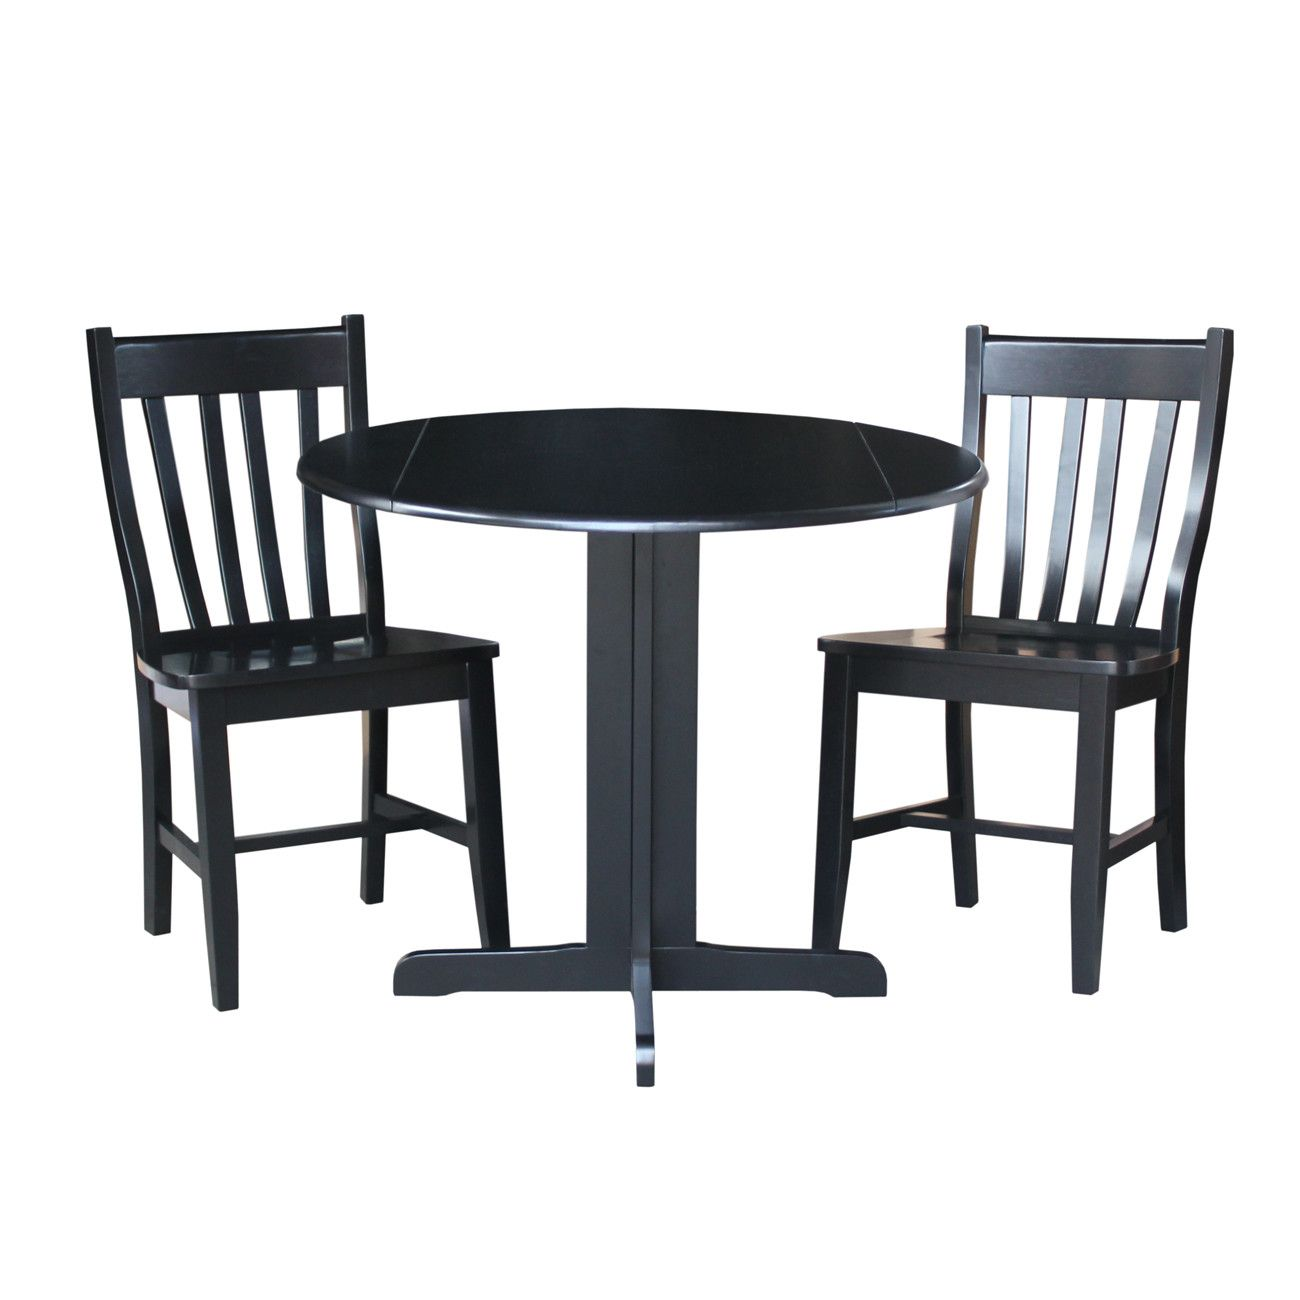 3-Piece Margot Dining Set | Products | Pinterest | Dining sets and ...